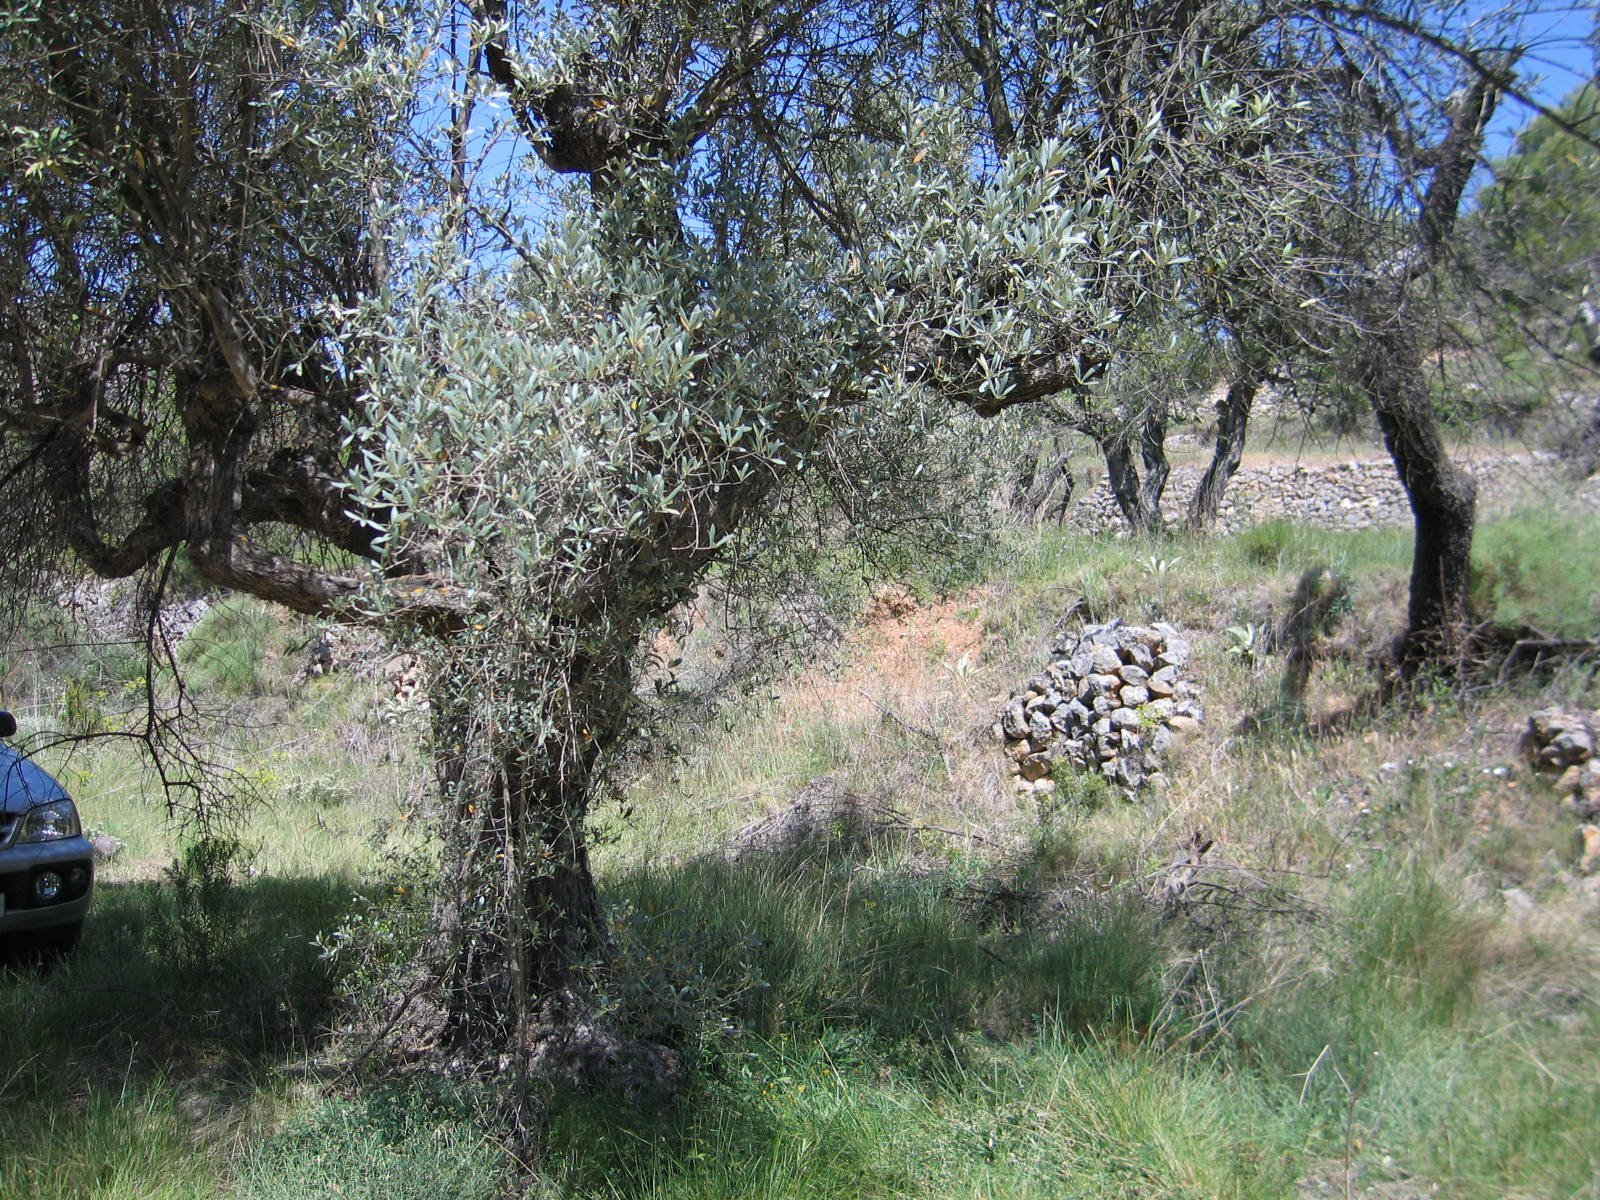 Land planted with almond and olive trees